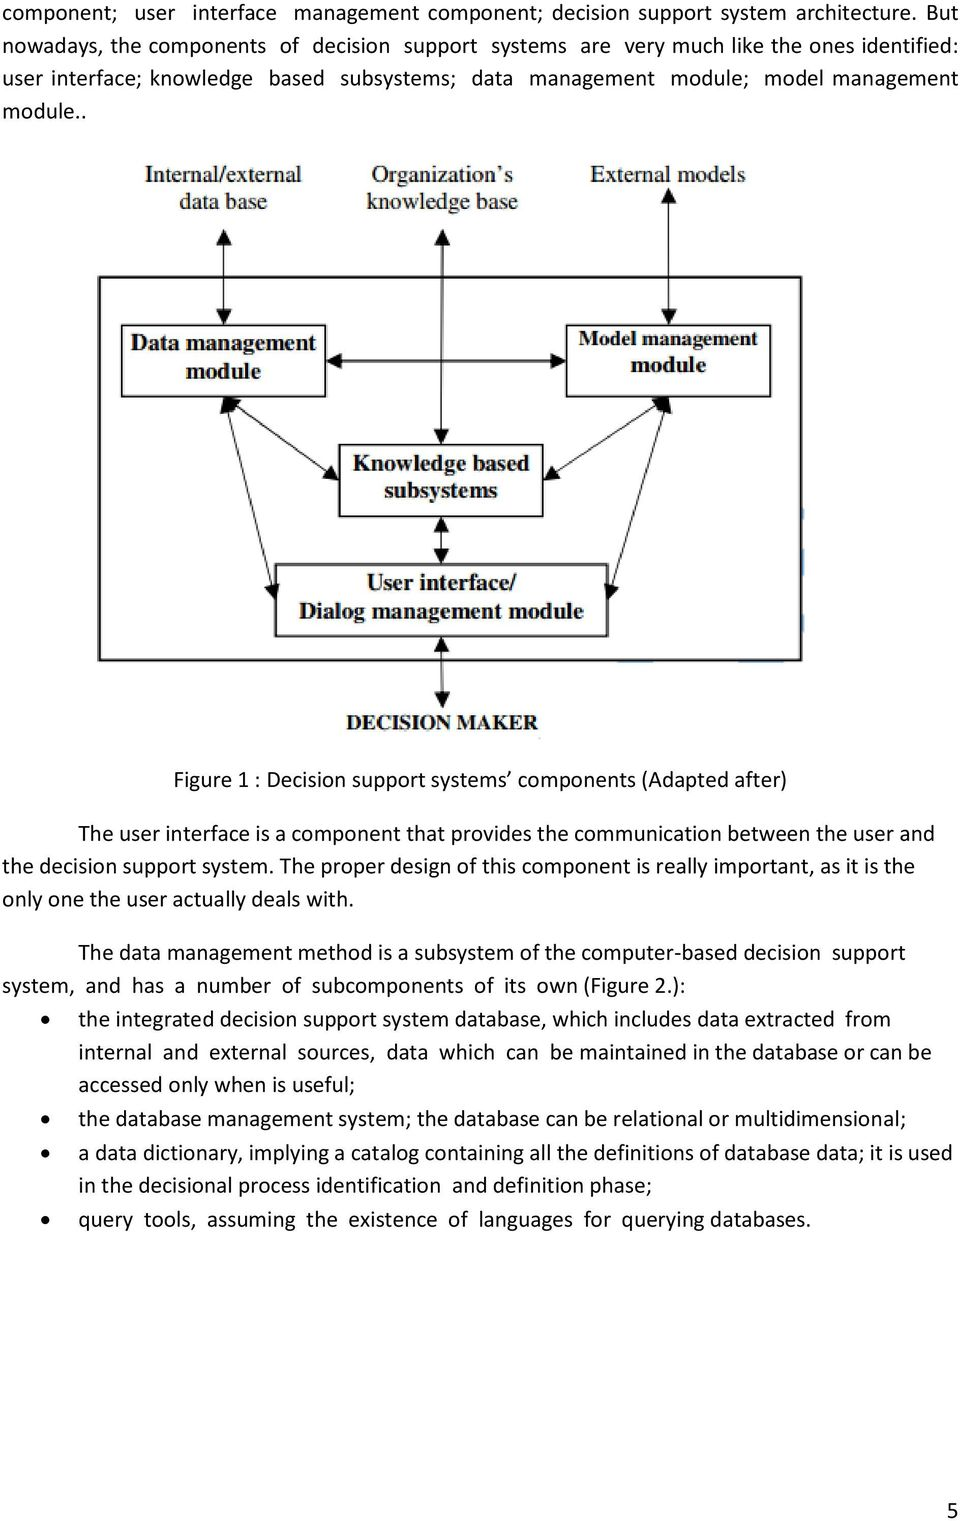 ASSIGNMENT OF ITM 613 DECISION SUPPORT SYSTEM - PDF